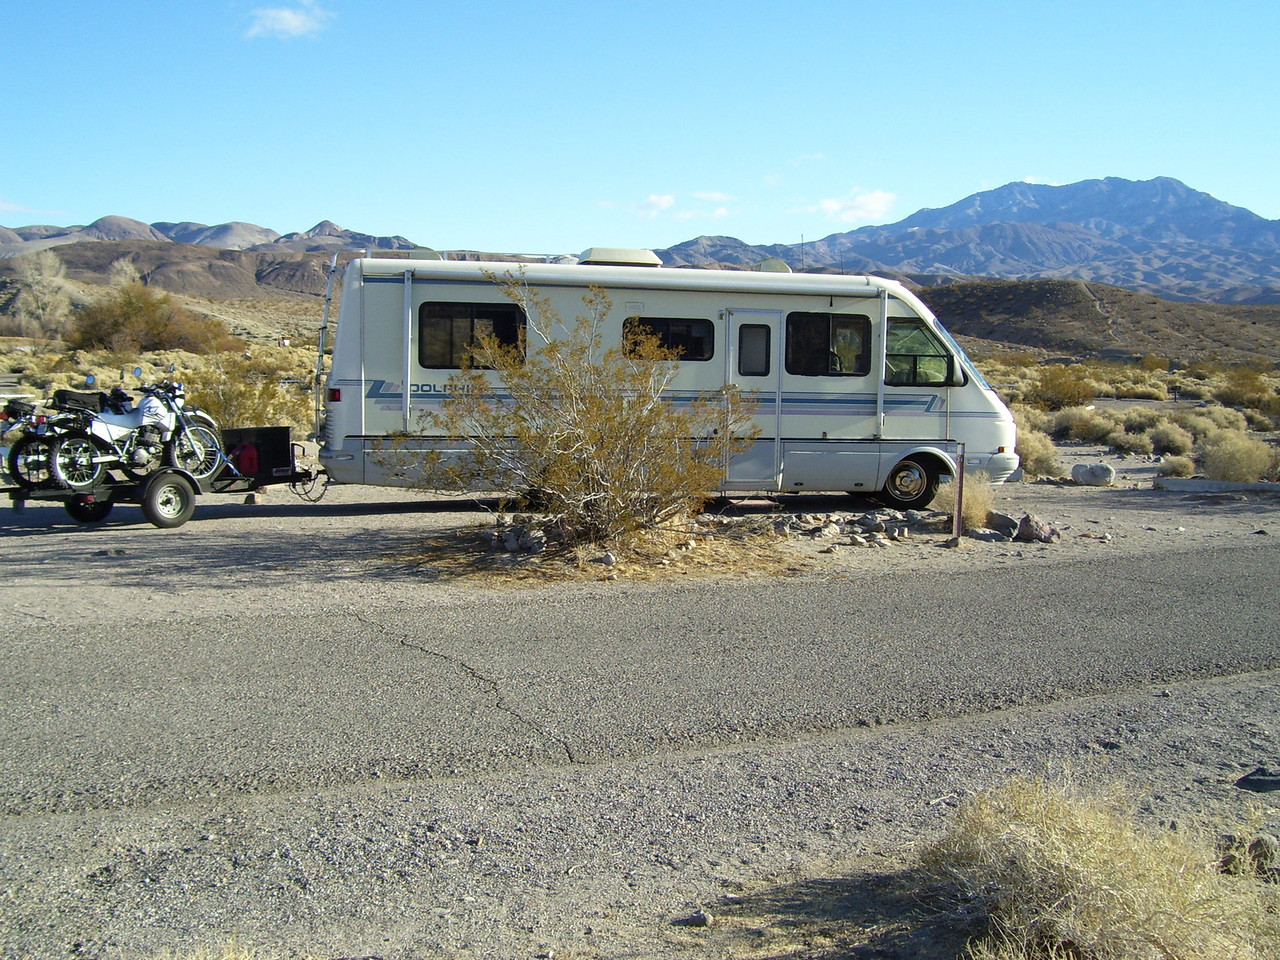 Mesquite Springs campground at the Northern end of Death Valley.